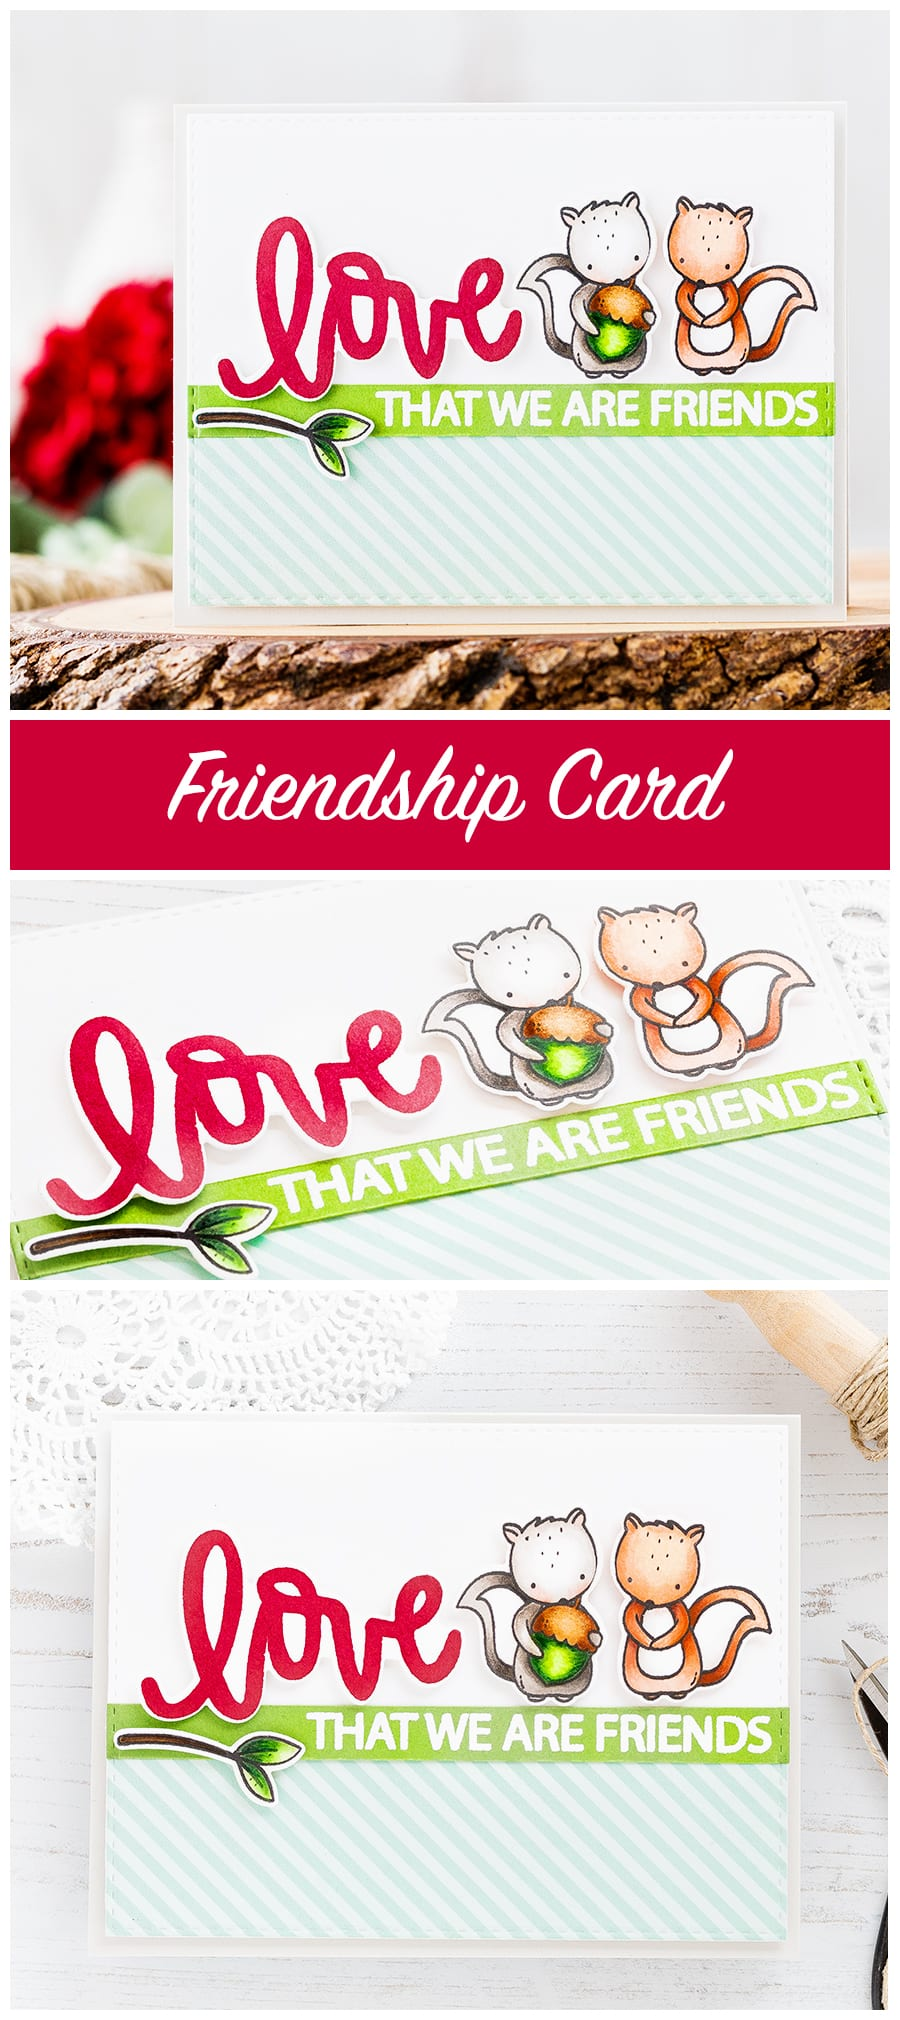 Friendship card - love that we are friends by Debby Hughes. Find out more by clicking on the following link: https://limedoodledesign.com/2017/01/friendship-card-love-that-we-are-friends/